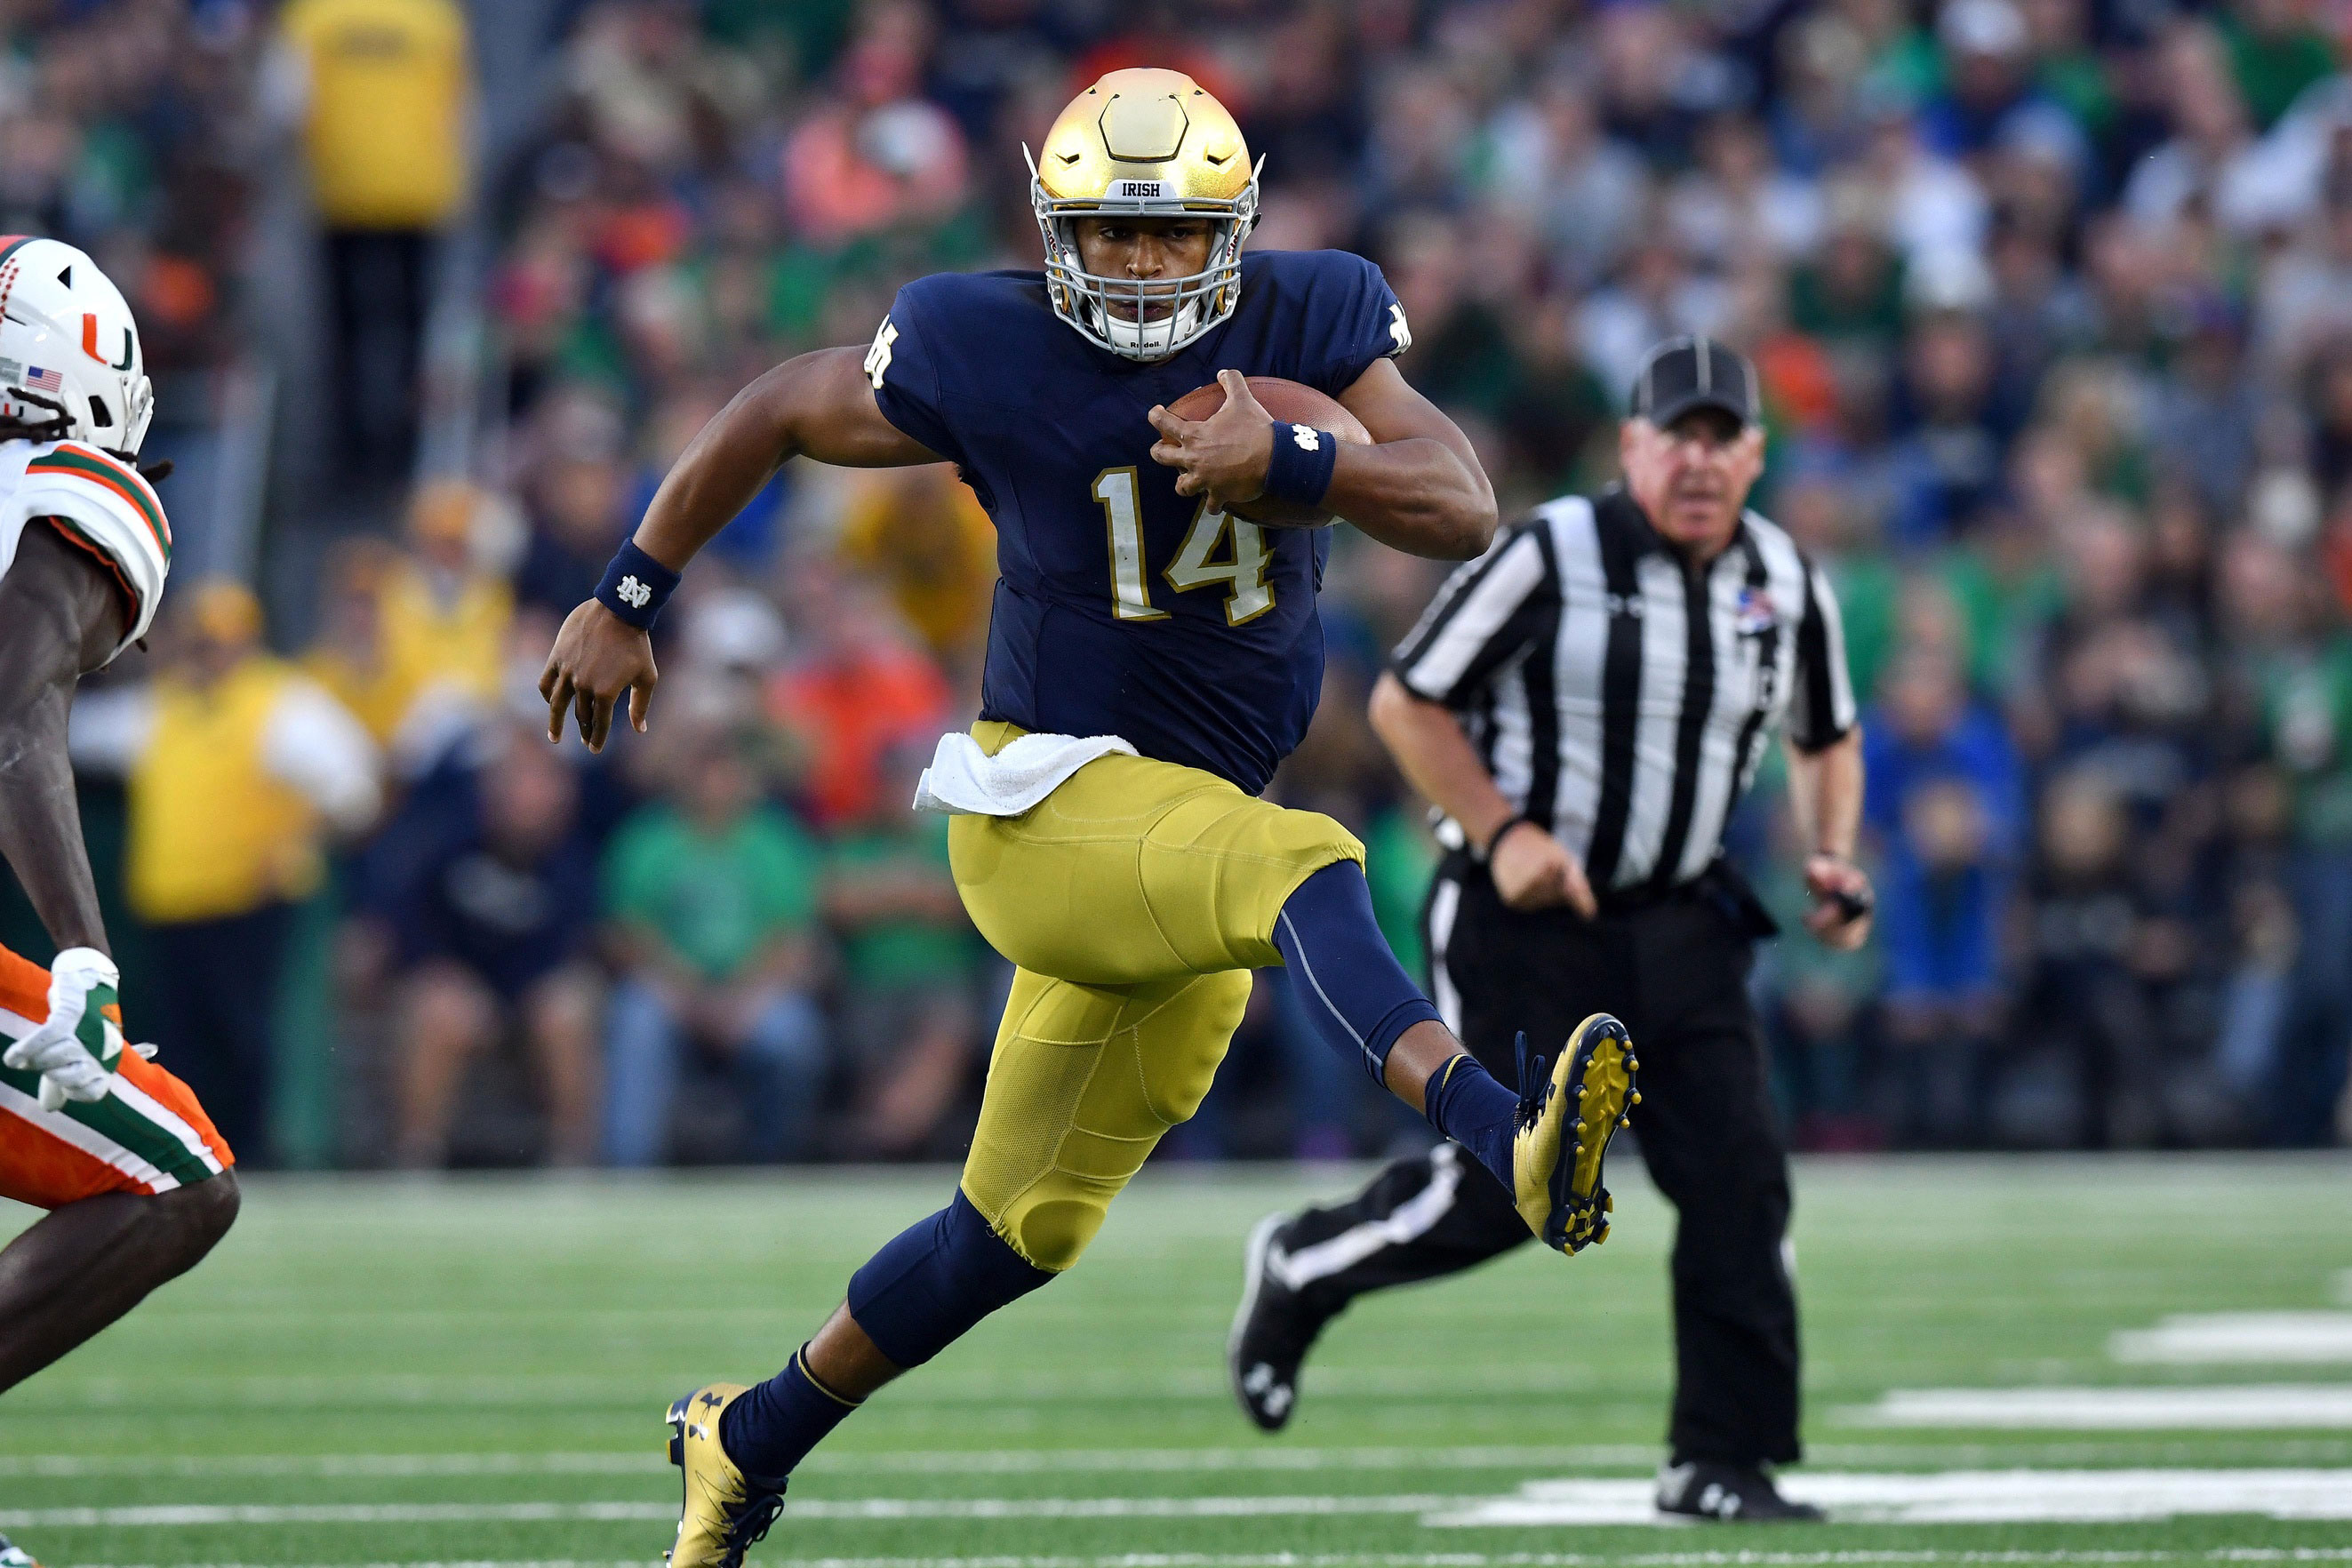 Notre-dame-draft-brian-kelly